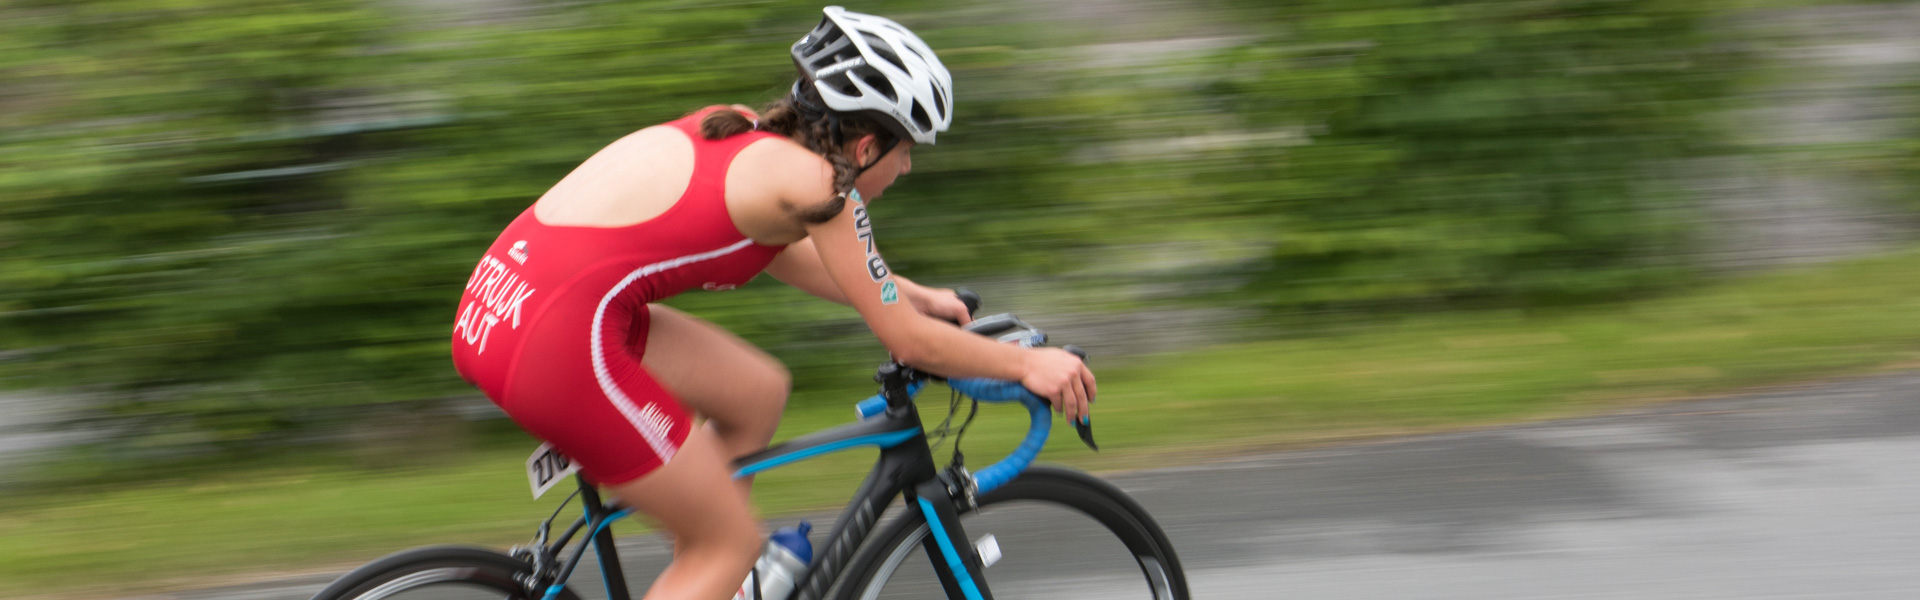 "<div style=""background: rgba(0,0,0,0.3) ; padding: 12px;""><h2>Triathlon</h2> <p>SWIM / BIKE / RUN<br /> <br />"